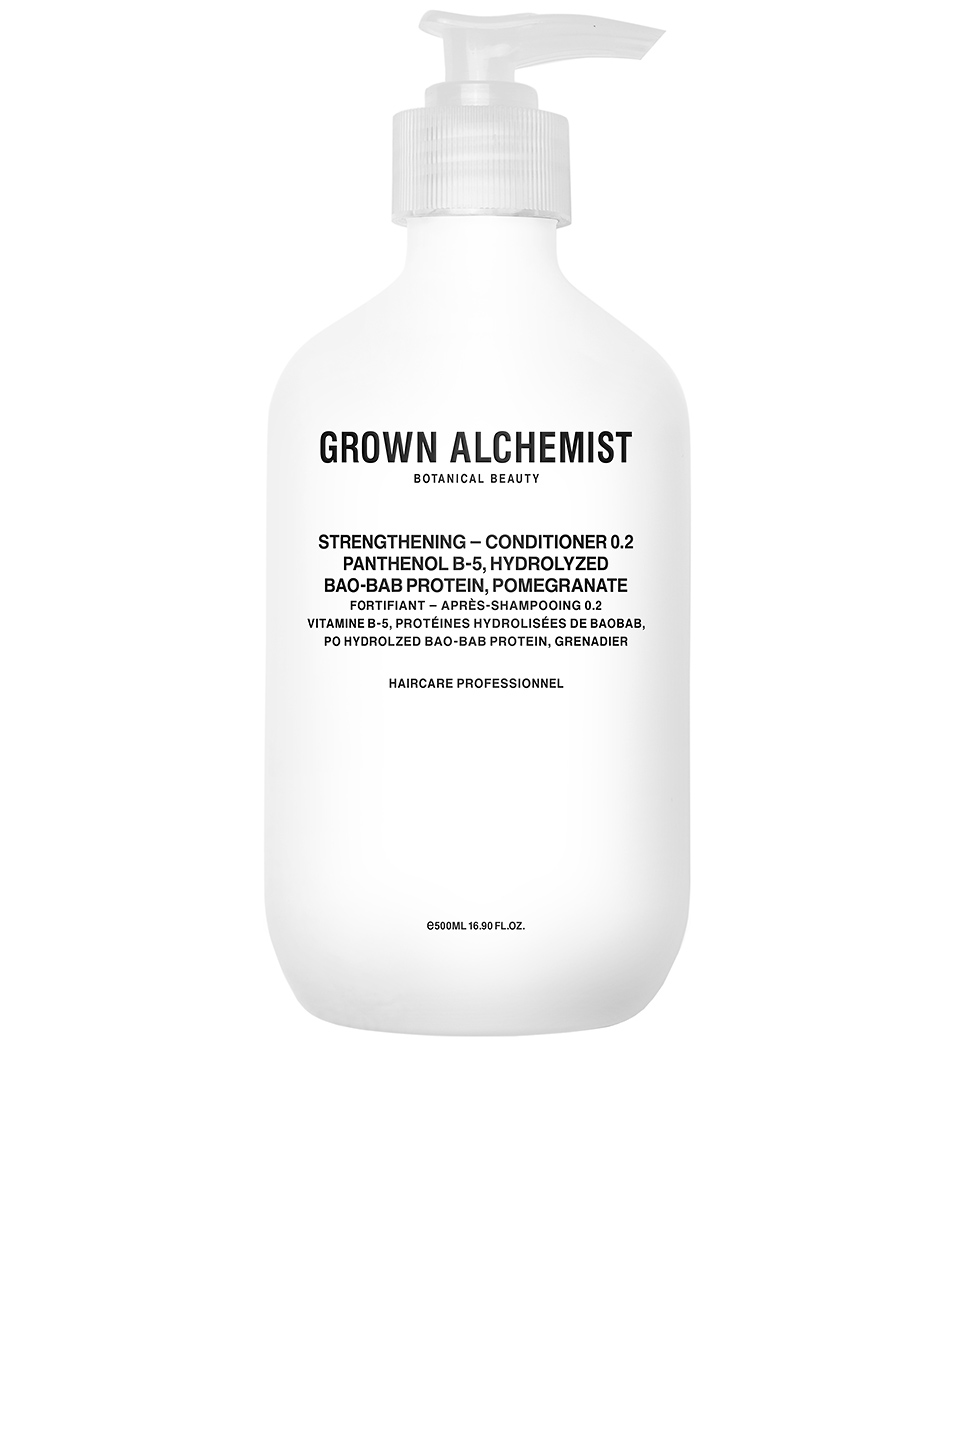 Grown Alchemist Strengthening Conditioner 0.2 in Panthenol B-5 & Hydrolyzed Bao-Bab Protein & Pomegranate